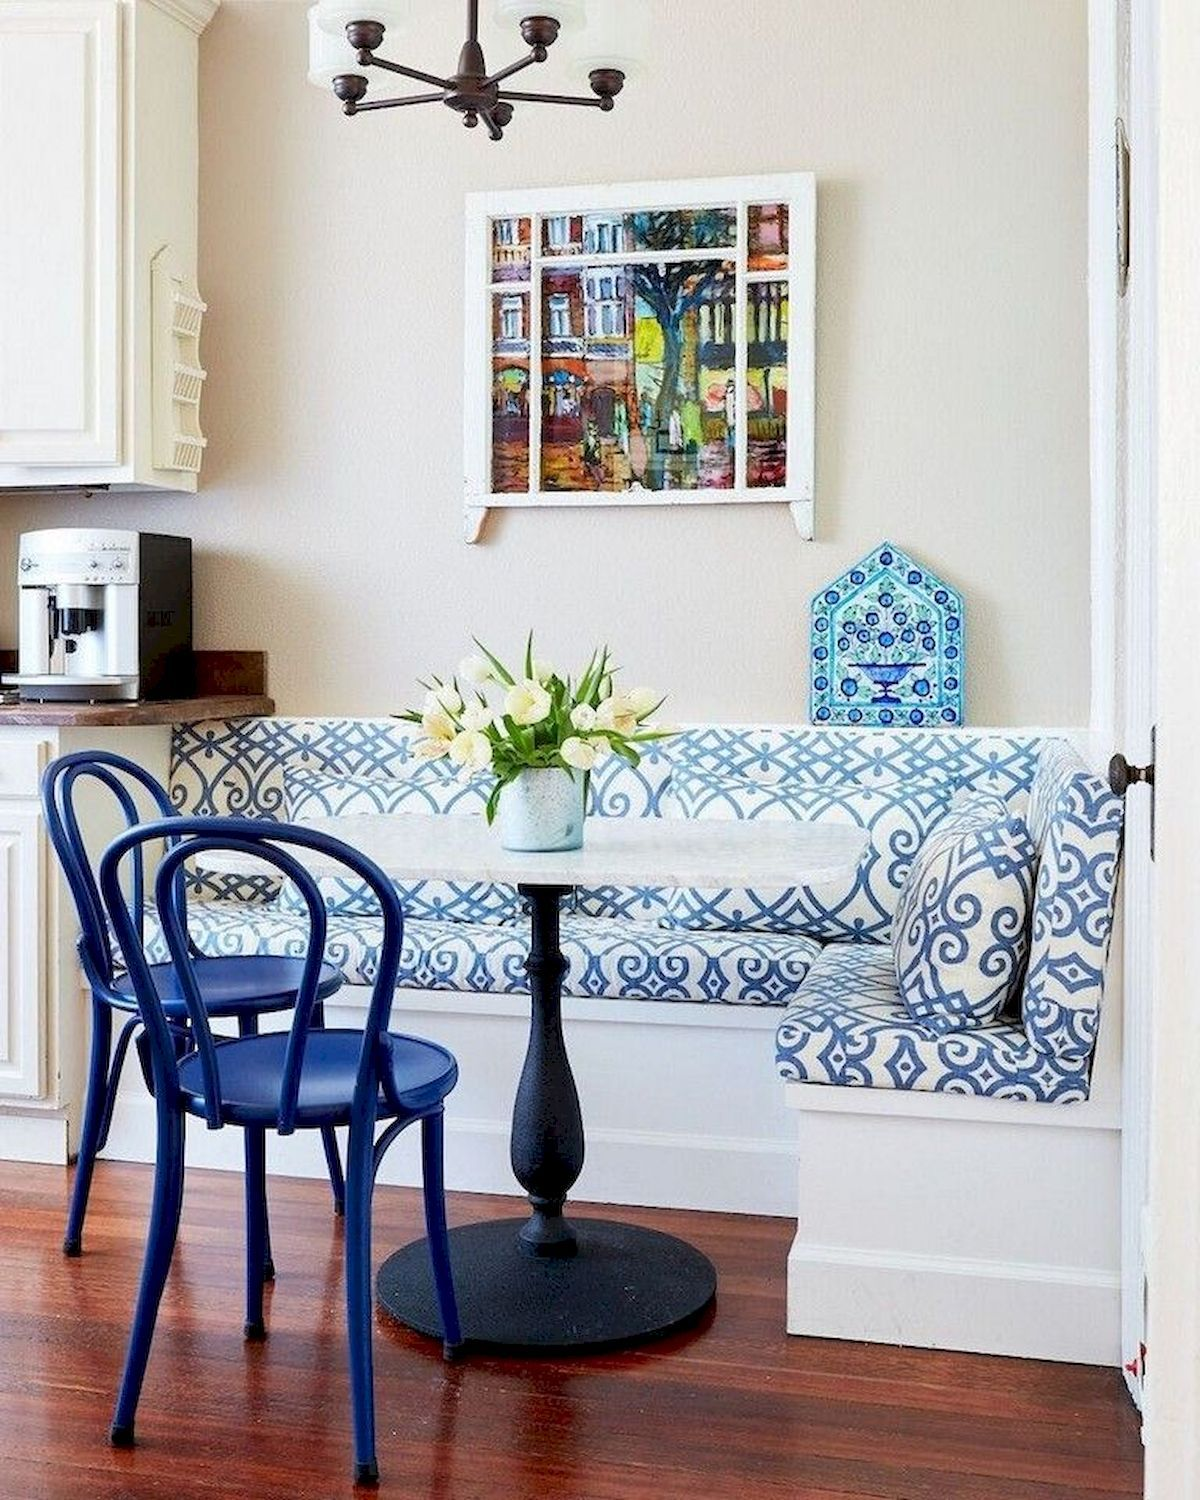 One Dining Room Three Different Ways: 52 Beautiful Small Dining Room Ideas On A Budget